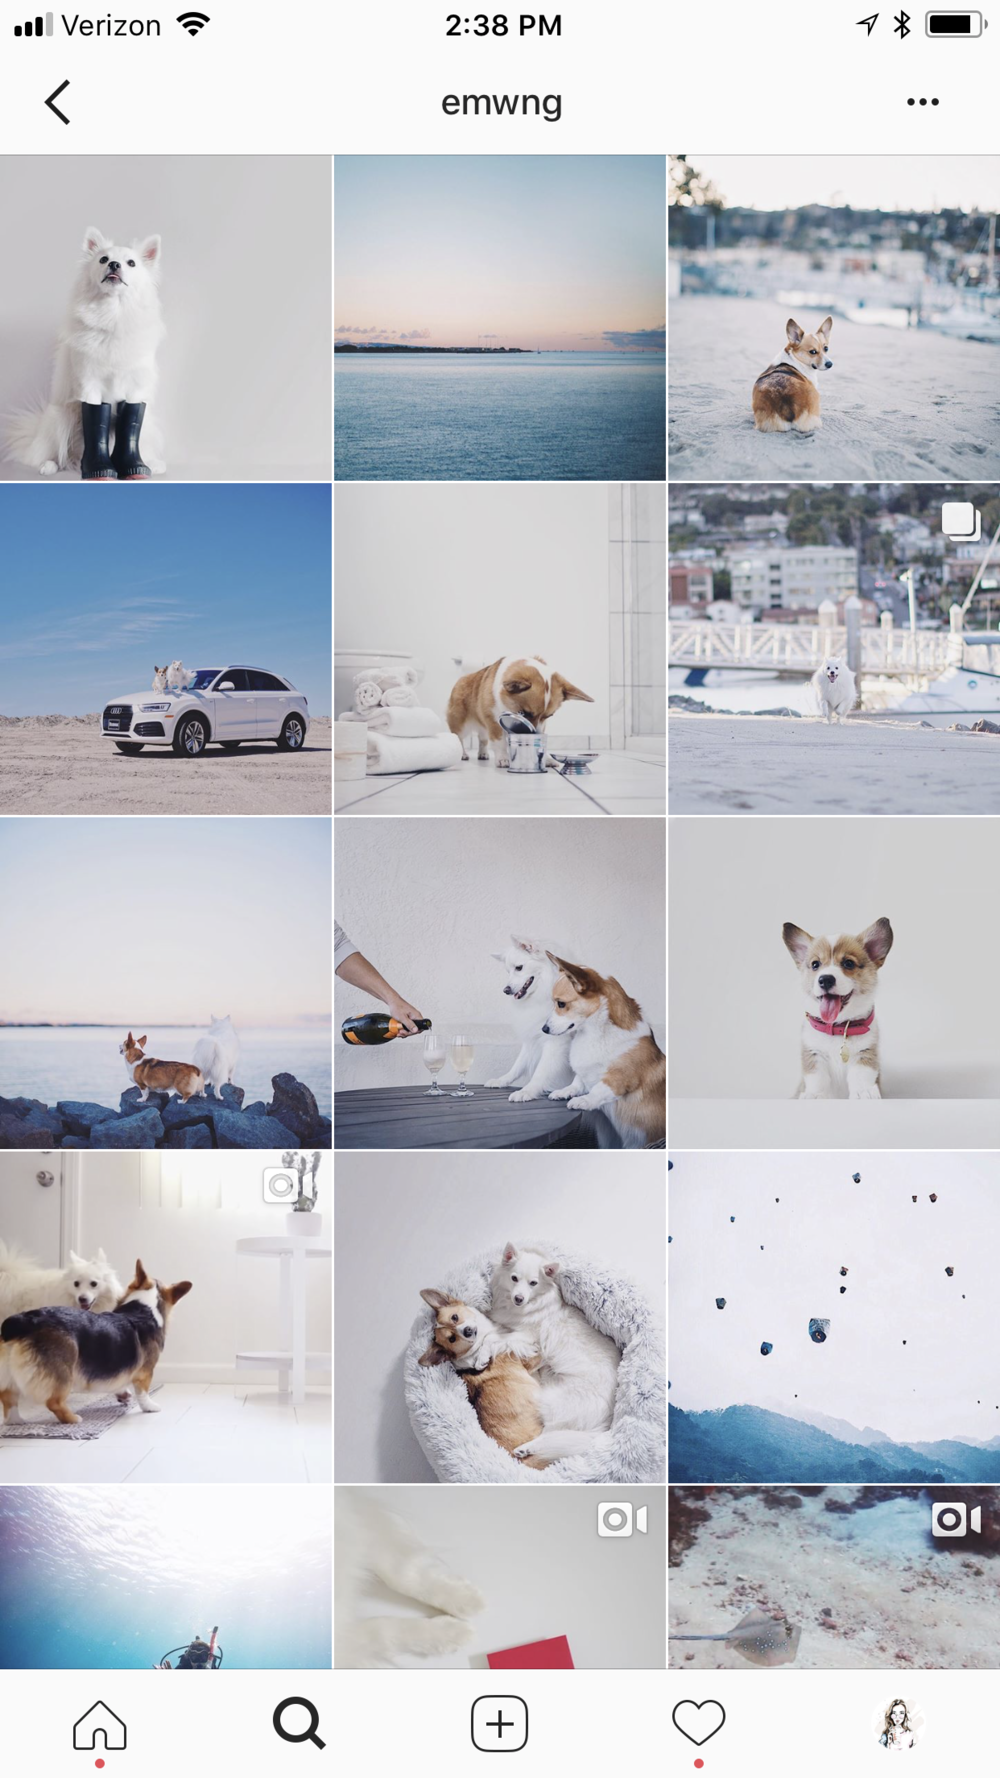 @emwng (minimalist AND puppies!!!)